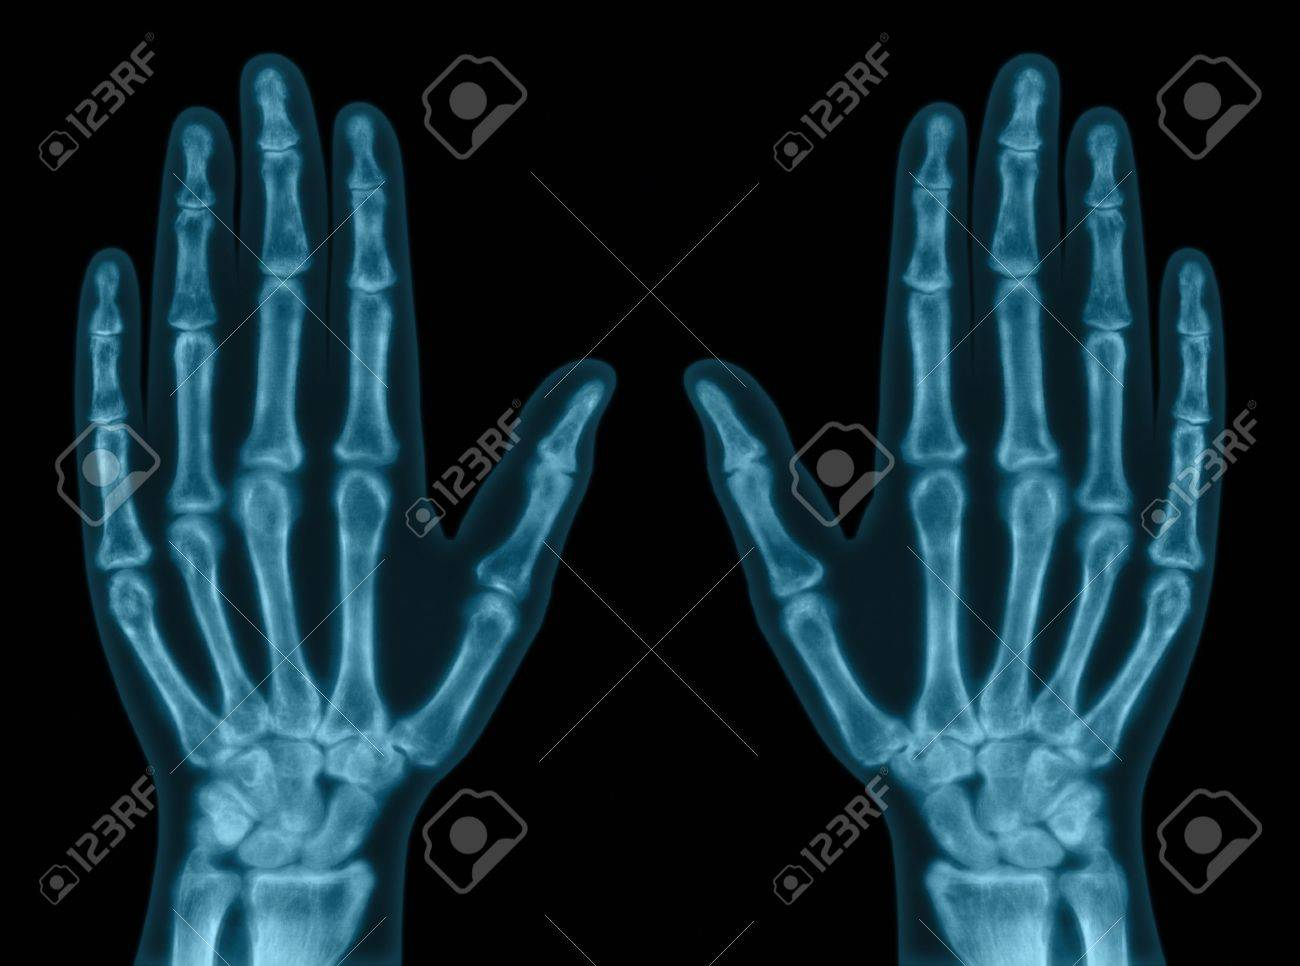 Xray Left Hand X-ray of both hands